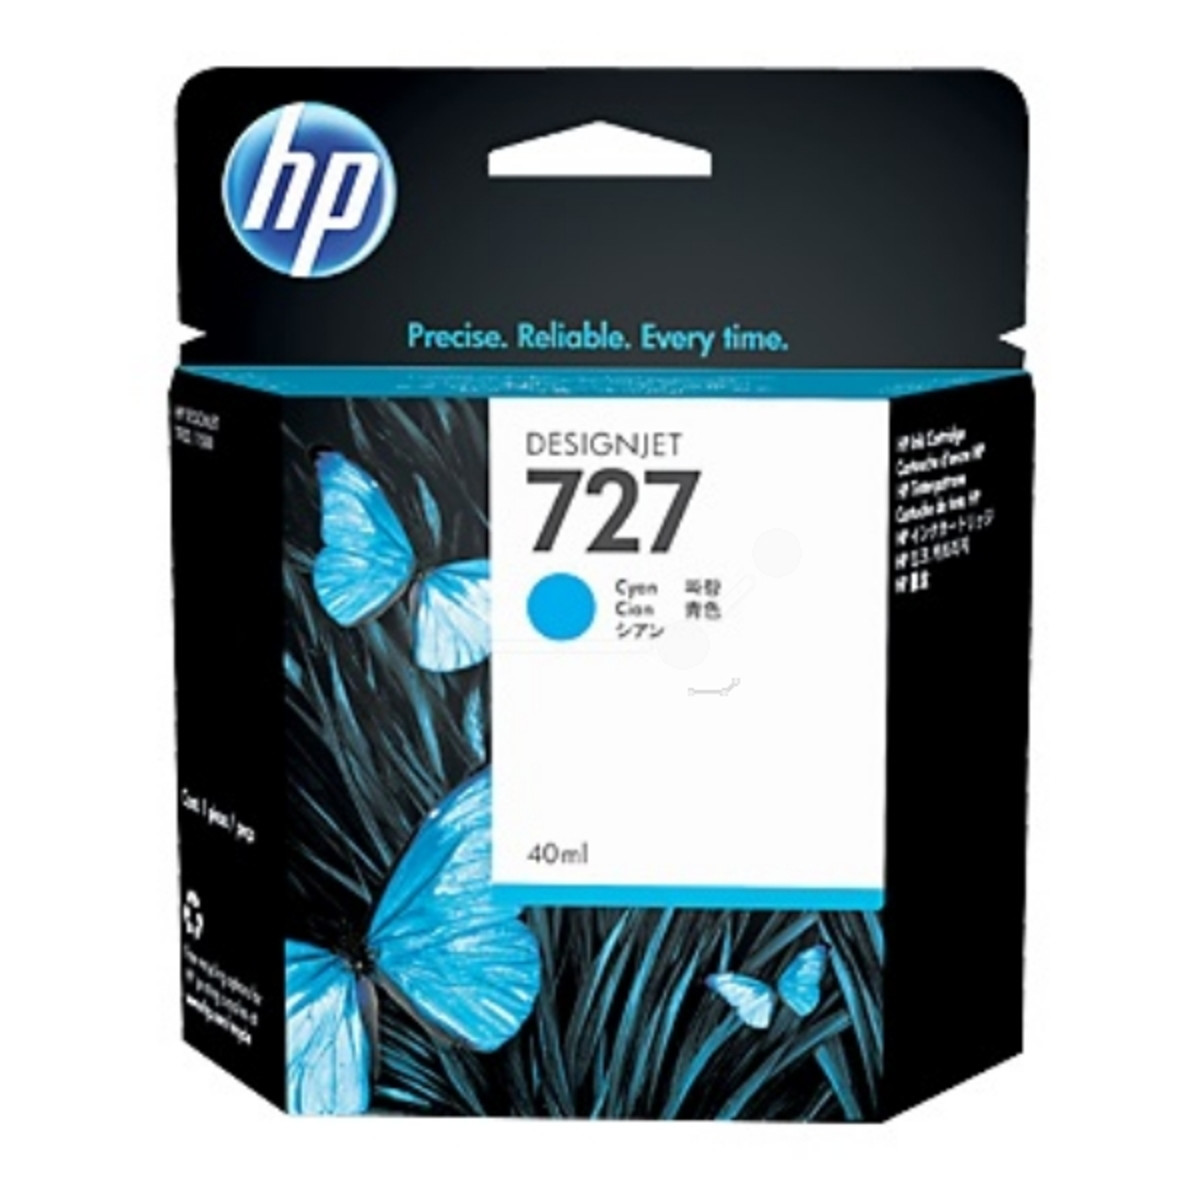 HP 727 (B3P13A) Cyan Ink Cartridge - 40 ml